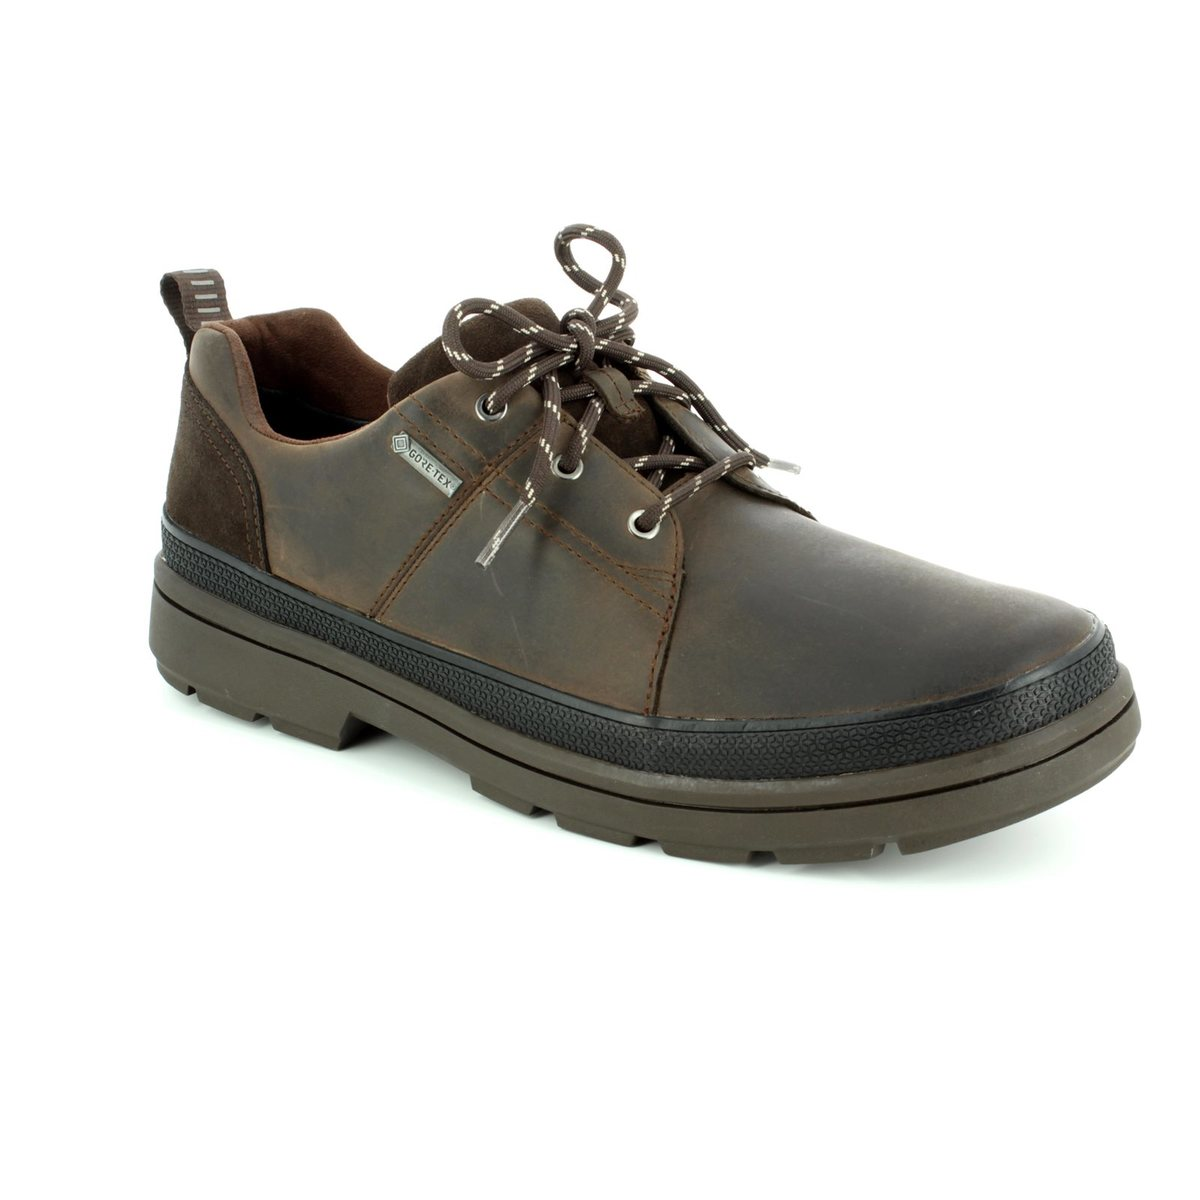 8abc22a210e Clarks Casual Shoes - Dark brown - 2834 97G RUSHWAY LACE GORE-TEX